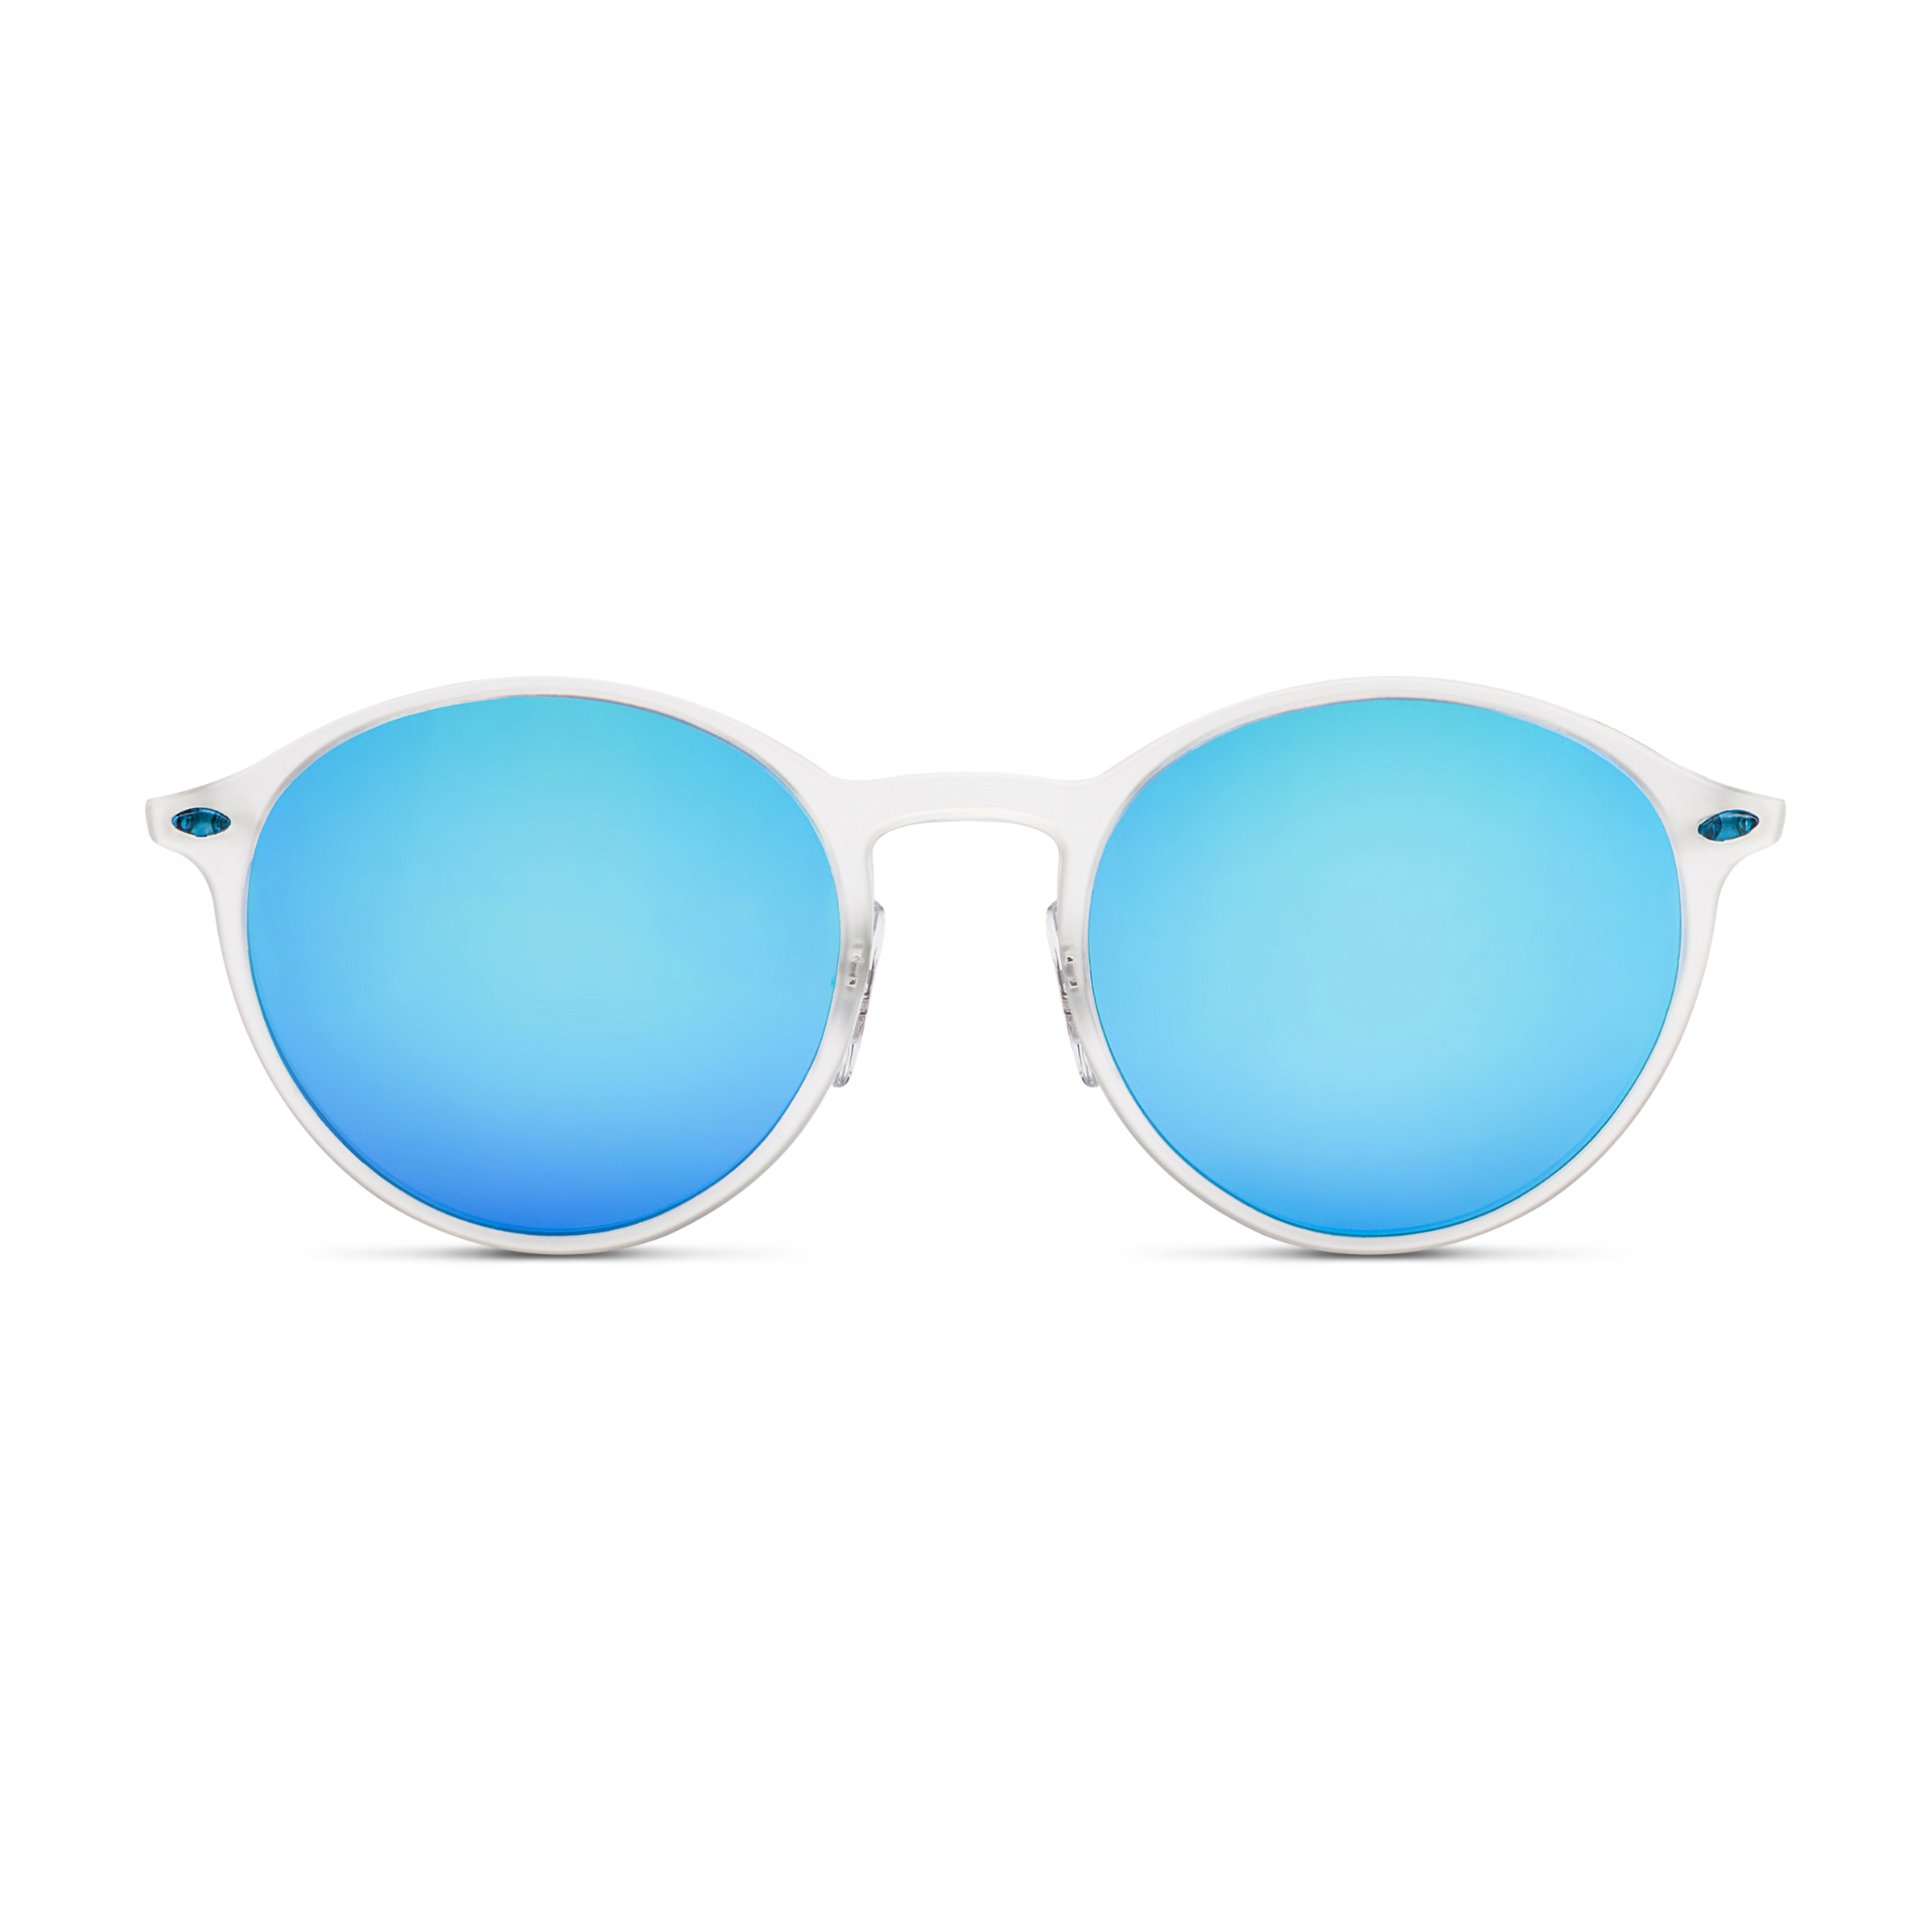 Sunglasses product photos